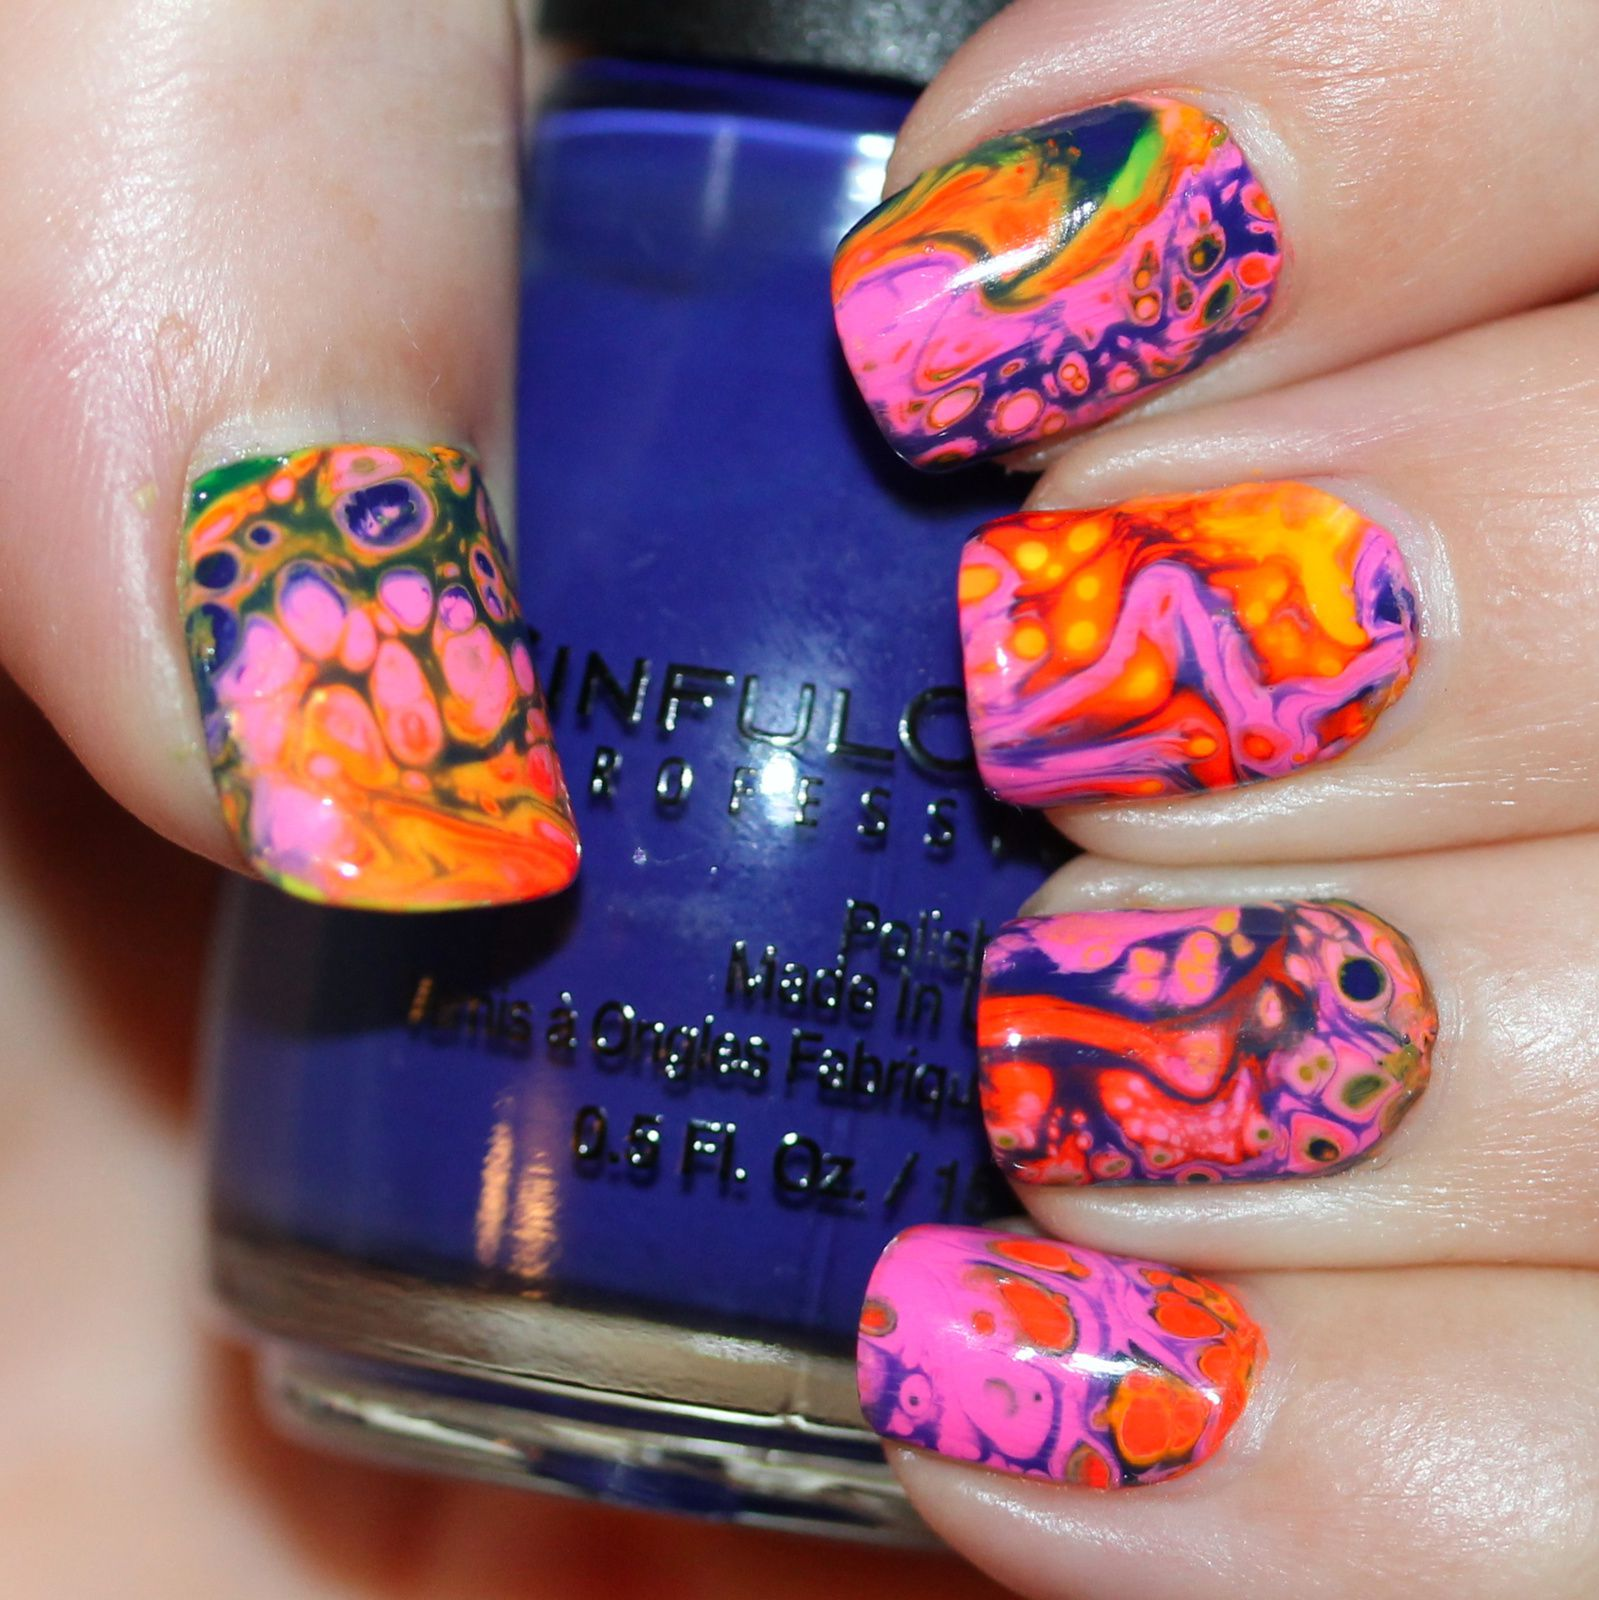 Essie Protein Base Coat / Finger Paints Base Coat for Neons / Fluid Nail Art Feat. Sinful Colors Hypnotic Transforming Top Coat in Rebel Rebel, PIXI Oh So Orange, Paradise Pink, Fluoro Flamingp & POP Beauty Yllow and Mandarin / HK Girl Top Coat